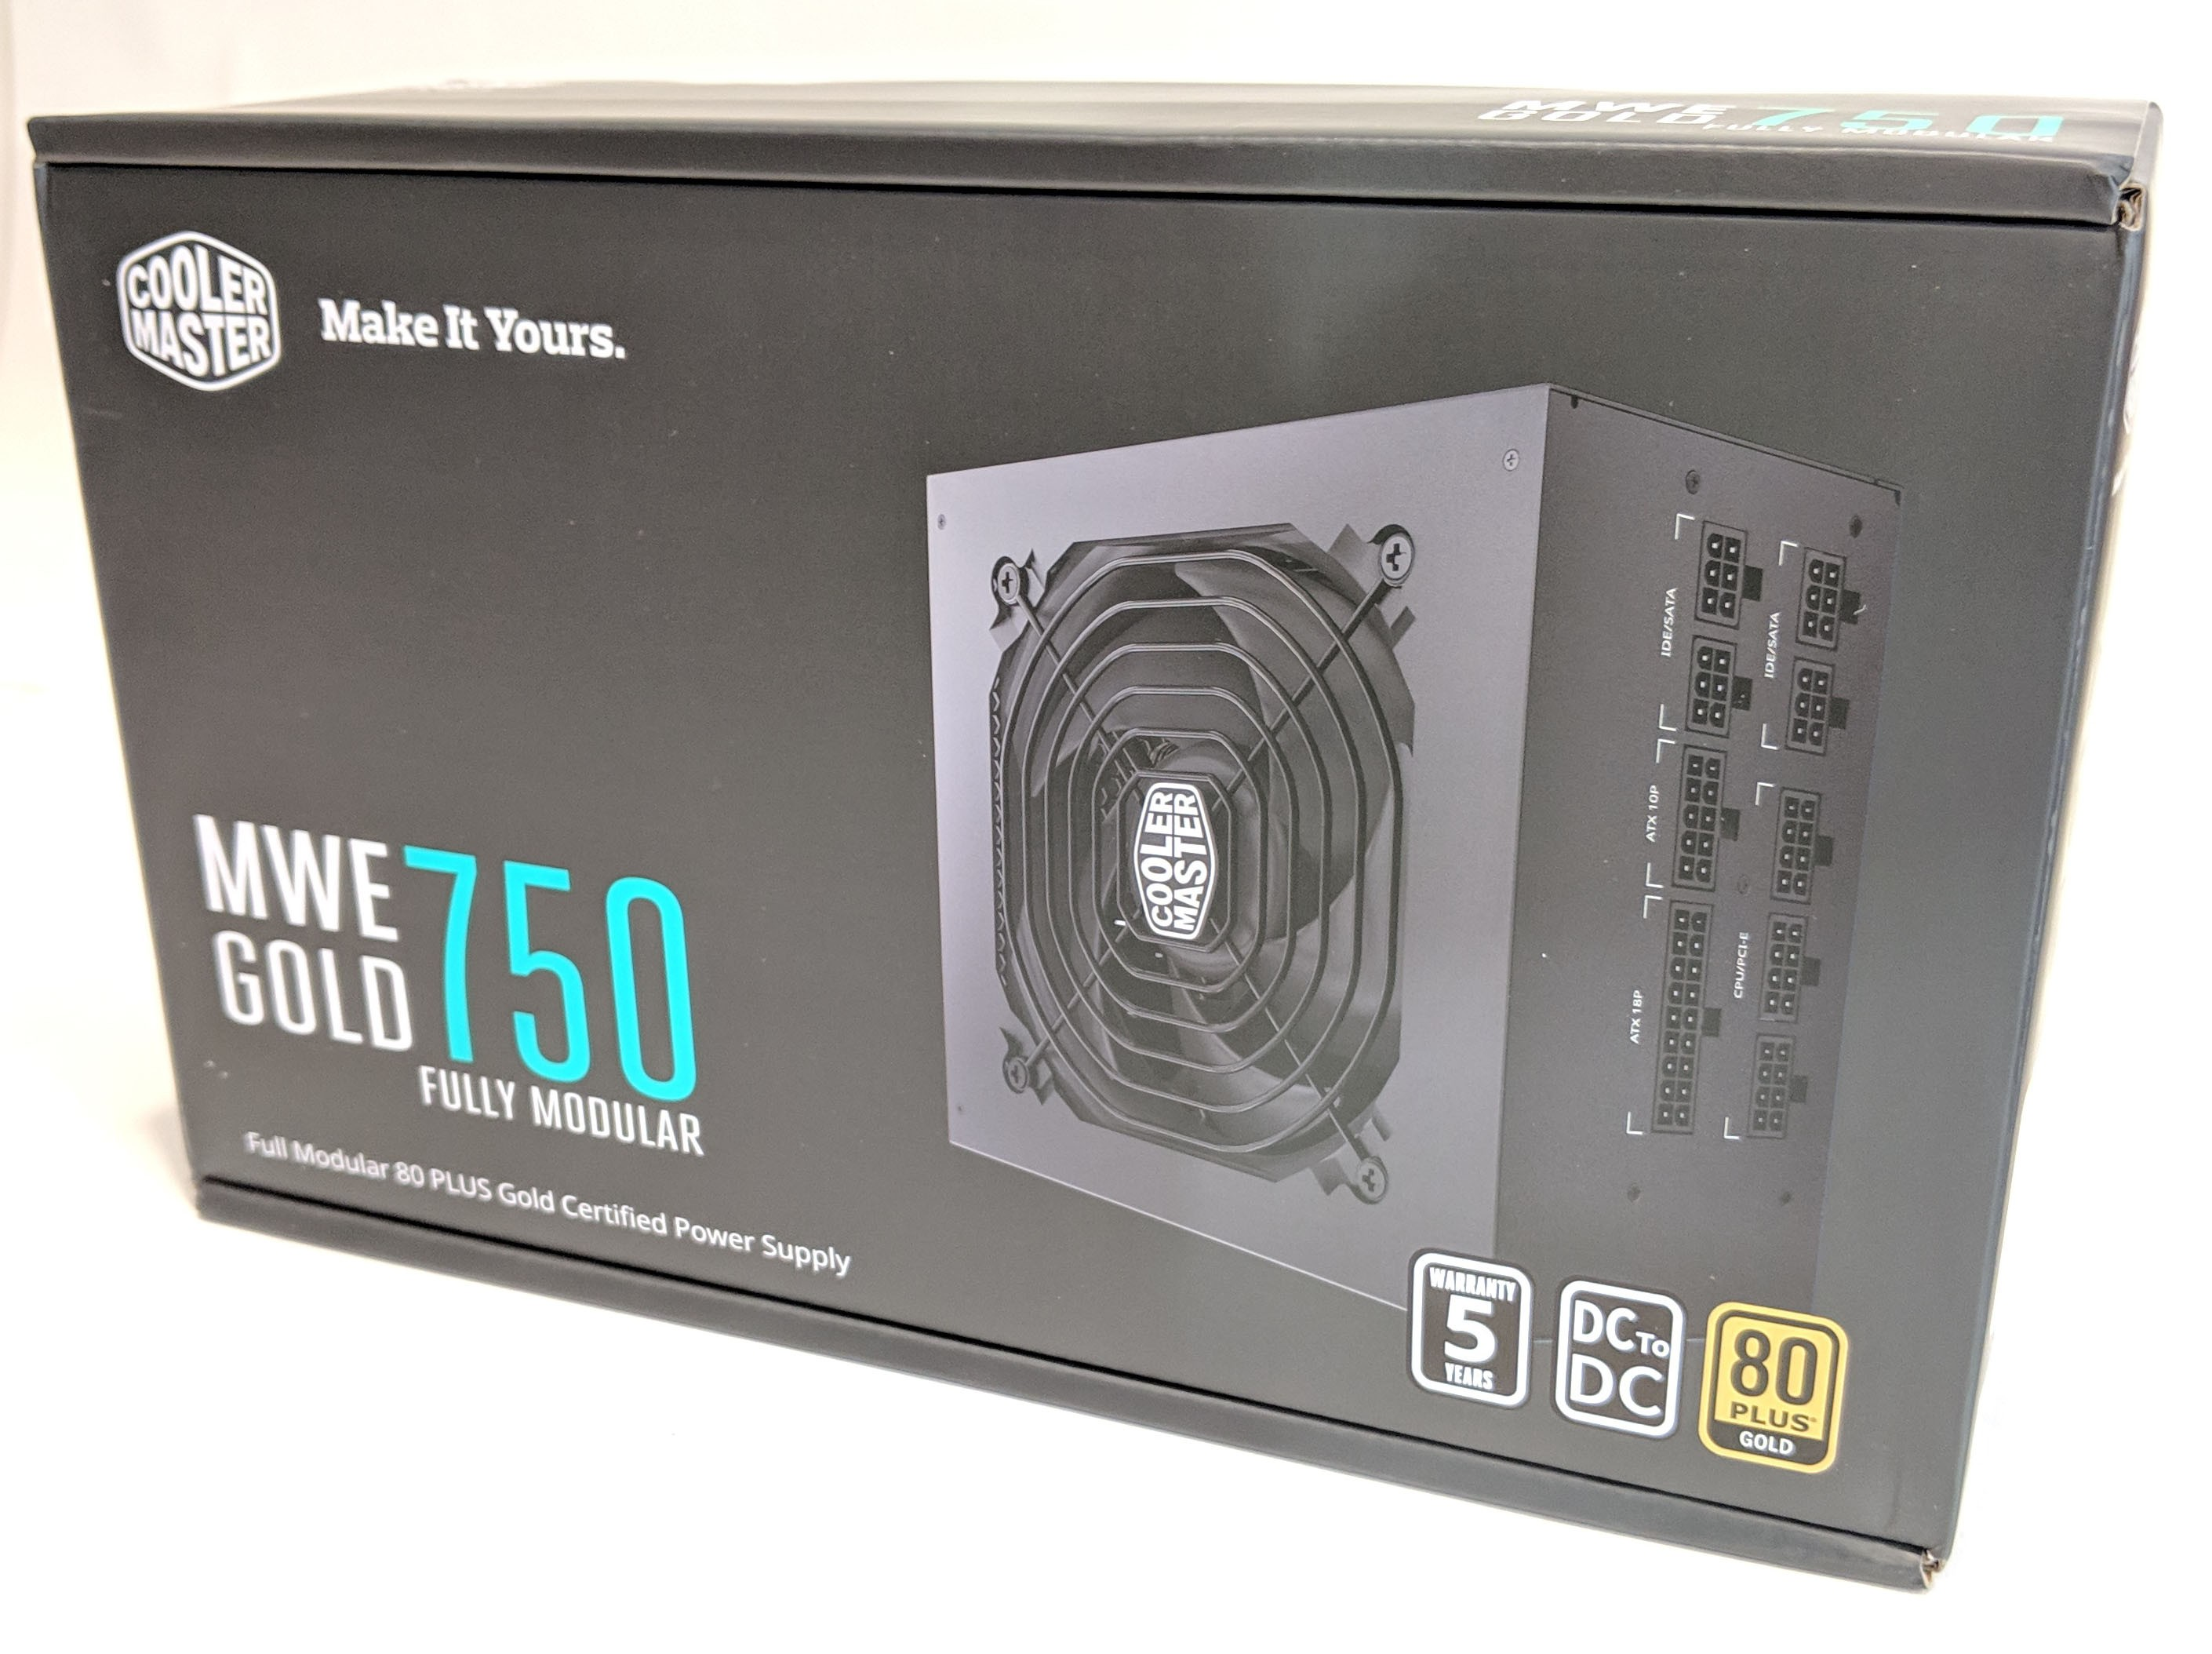 Cooler Master MWE Gold 750 Power Supply Review – GND-Tech